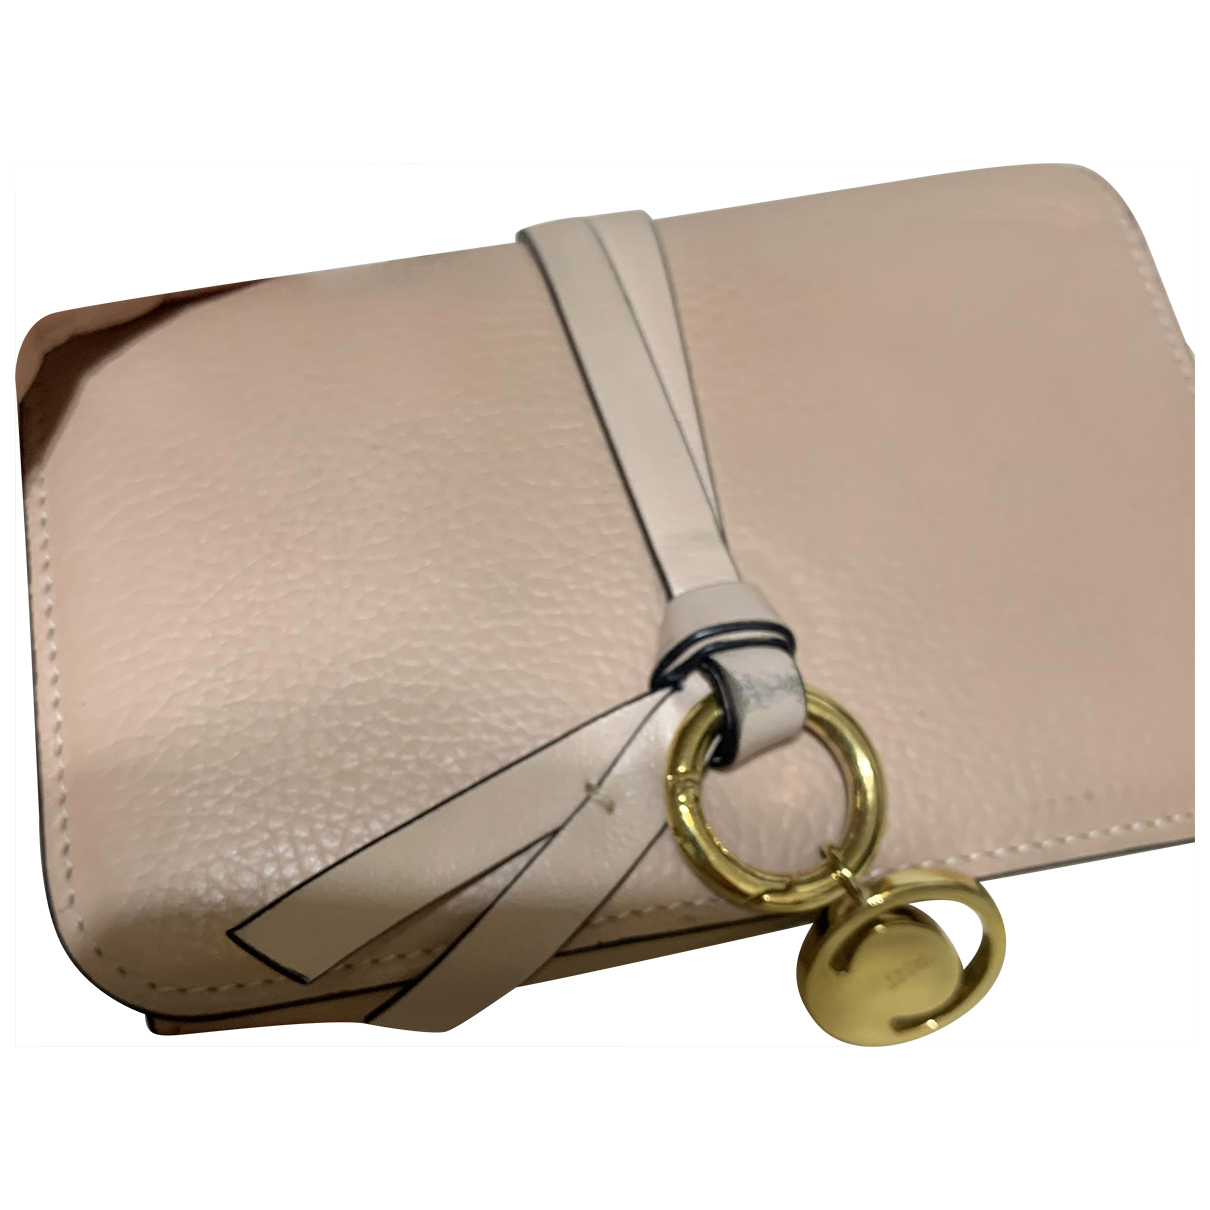 Chloé \N Beige Leather wallet for Women \N